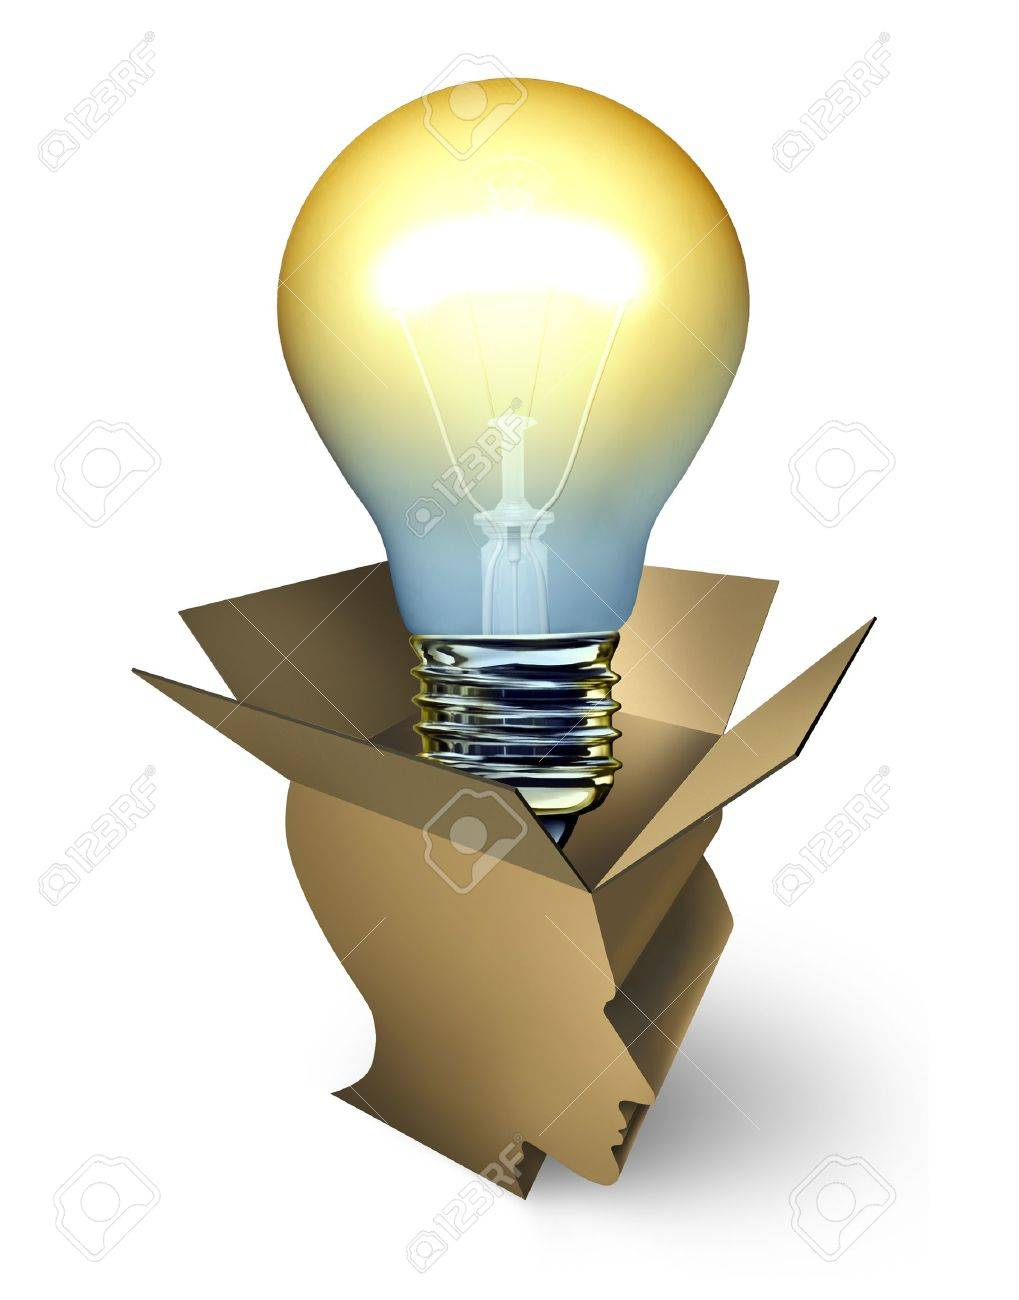 Open thinking business creativity concept with an opened cardboard box shaped as a human head  and an illuminated light bulb emerging out as an icon of new ideas success through inspiration and intelligence Stock Photo - 20688495